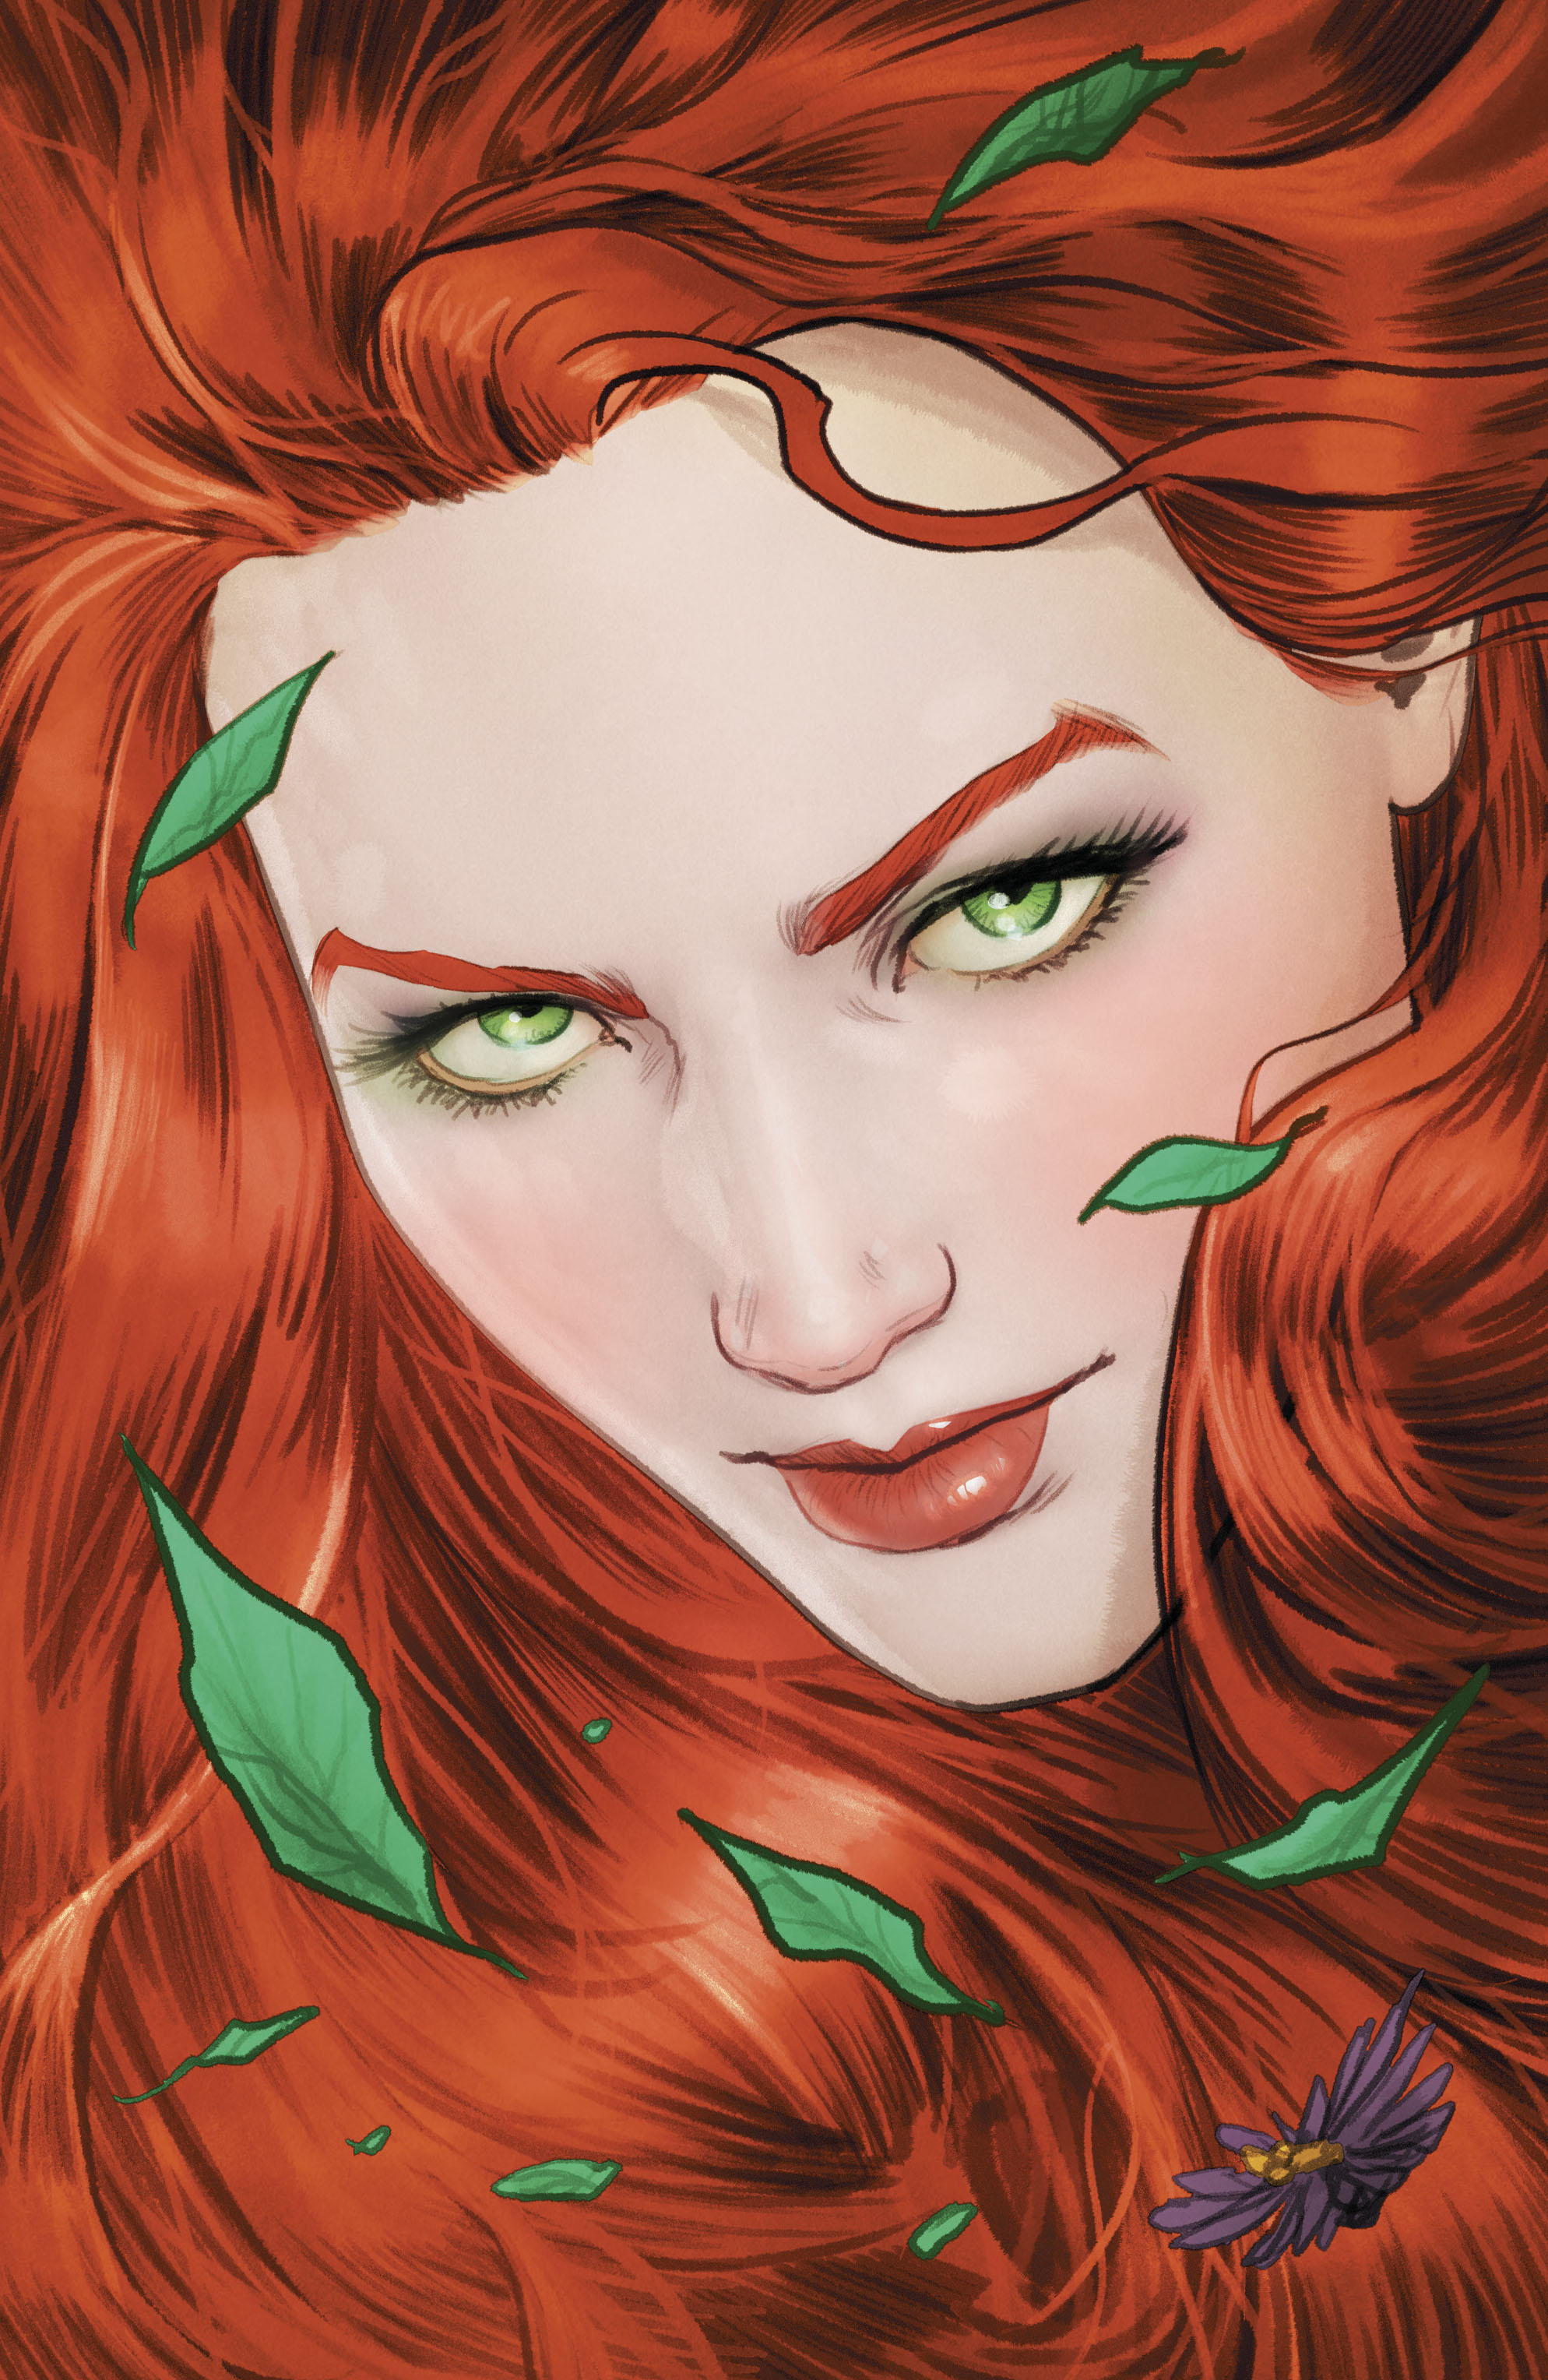 Poison Ivy (Batman Vol. 3 #41)